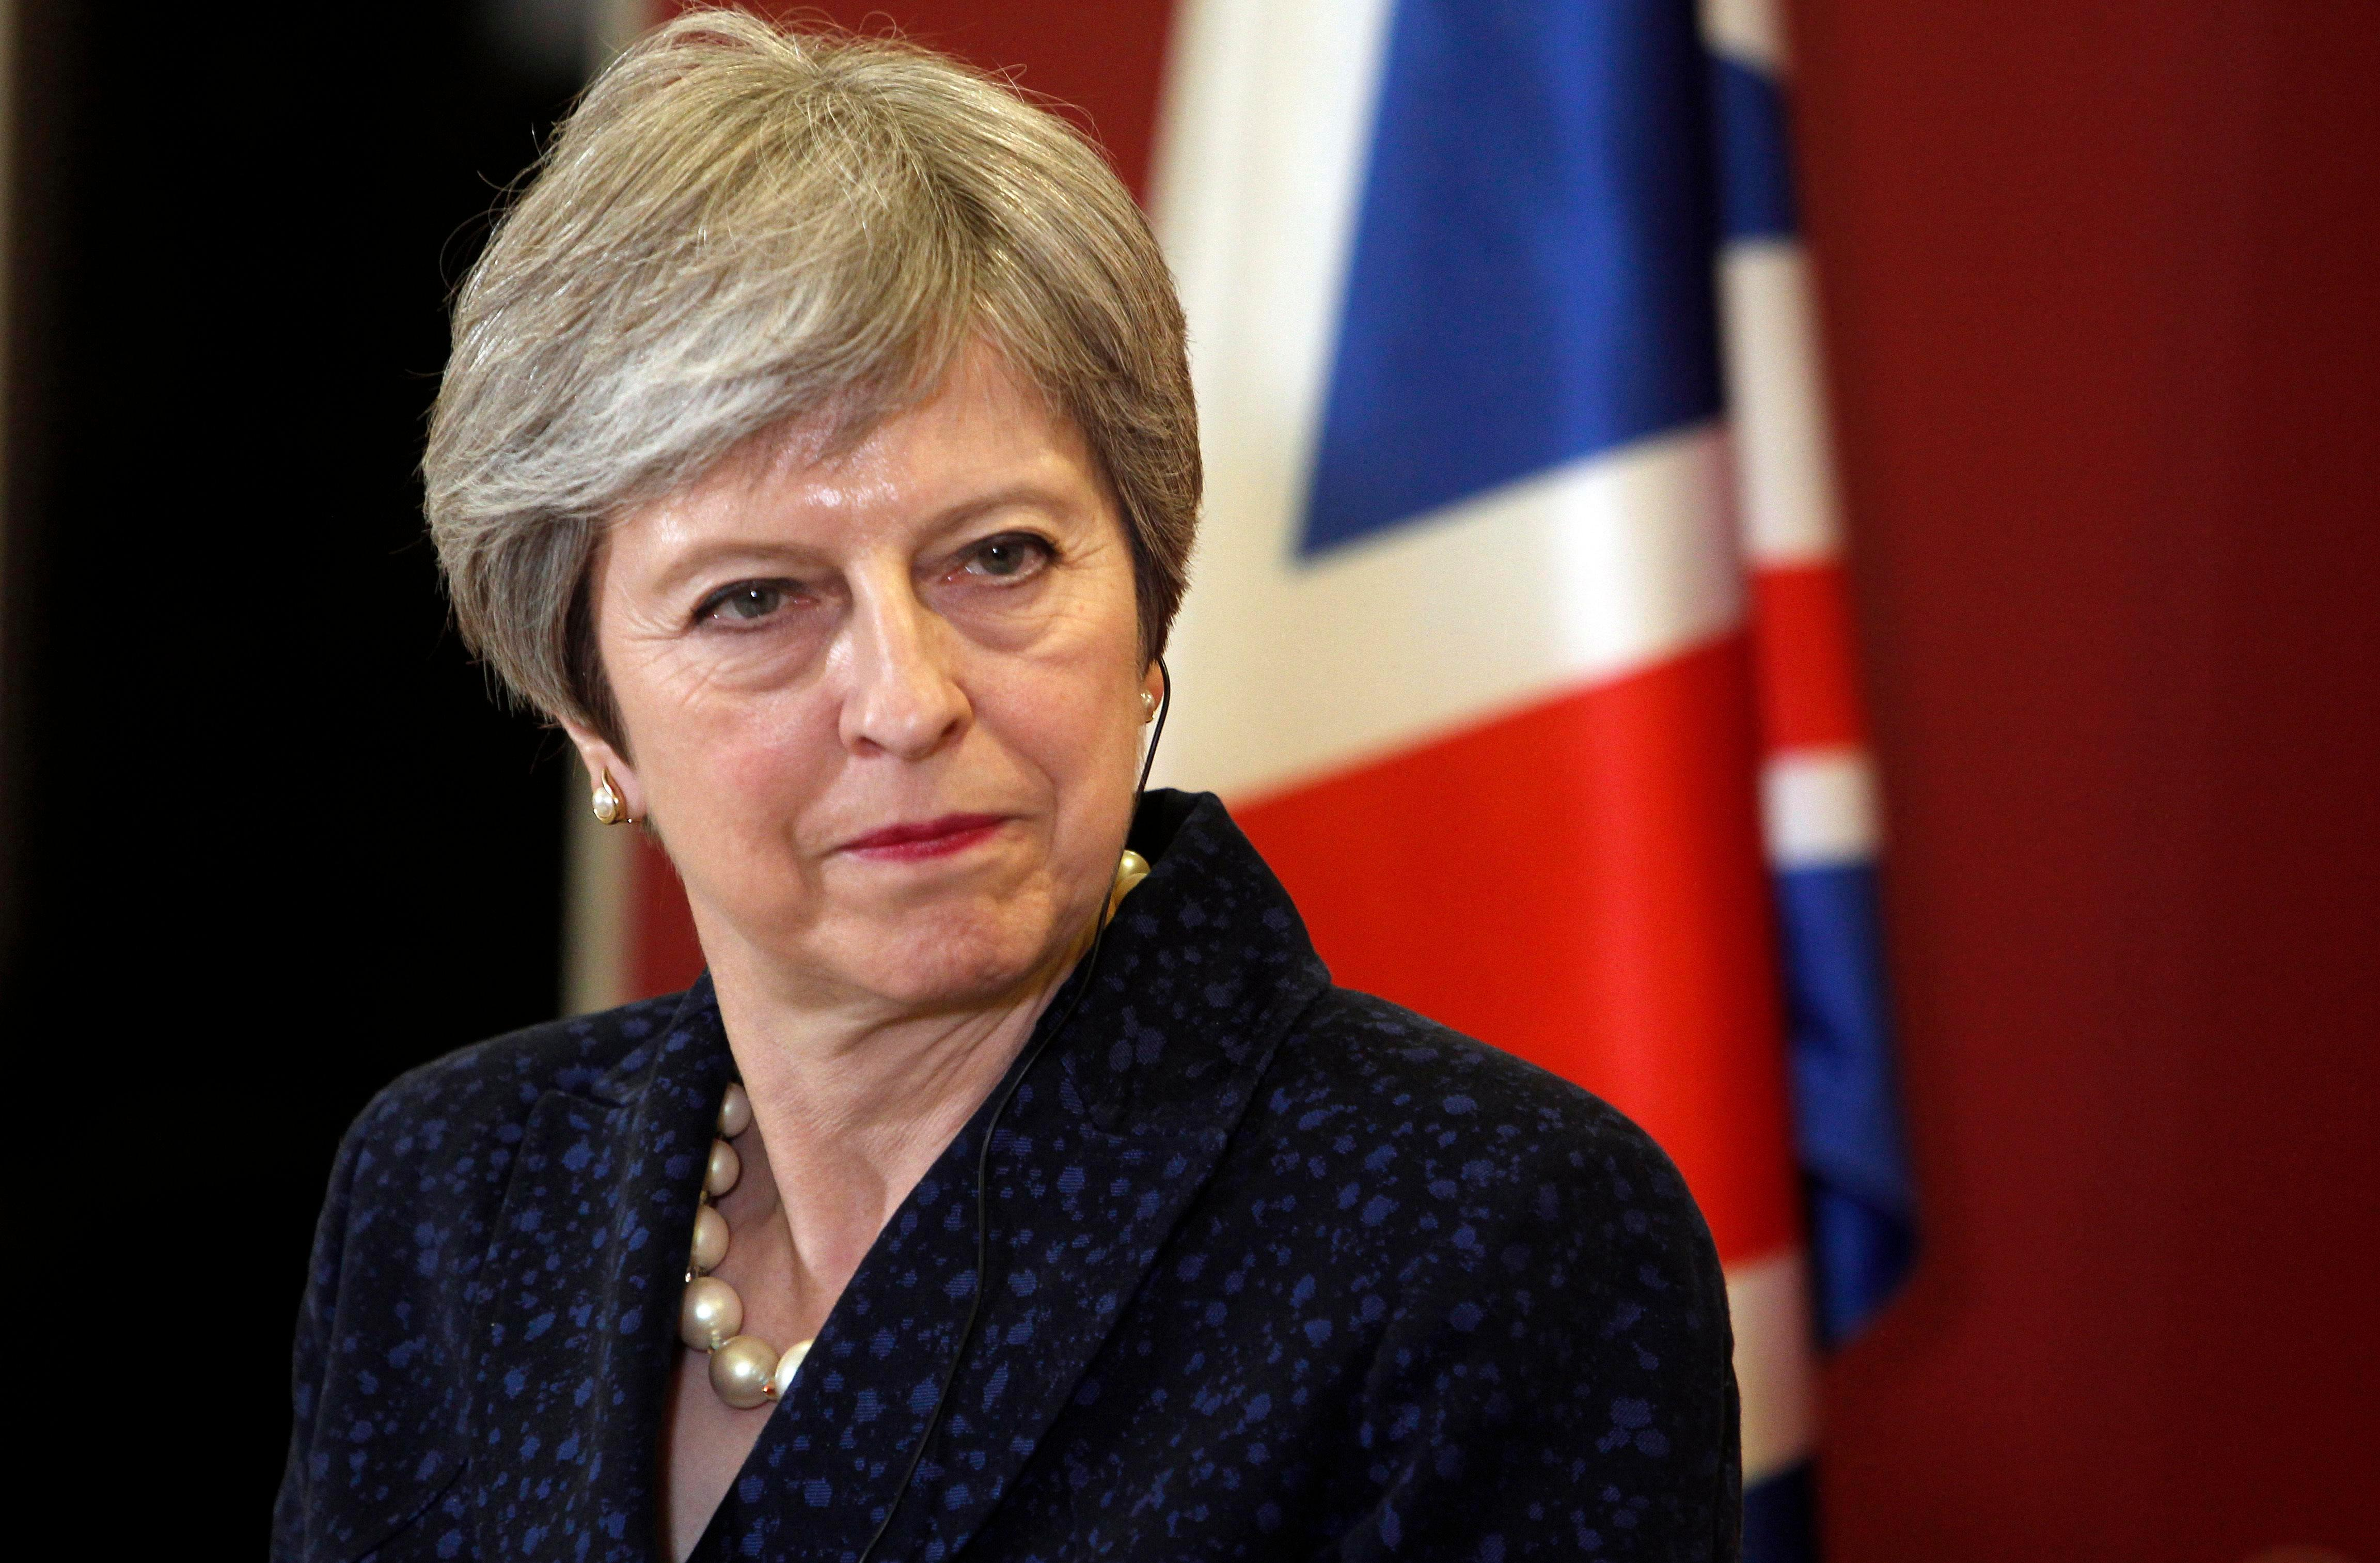 Prime Minister Theresa May to embark on grand tour of Europe to jump-start Brexit trade talks